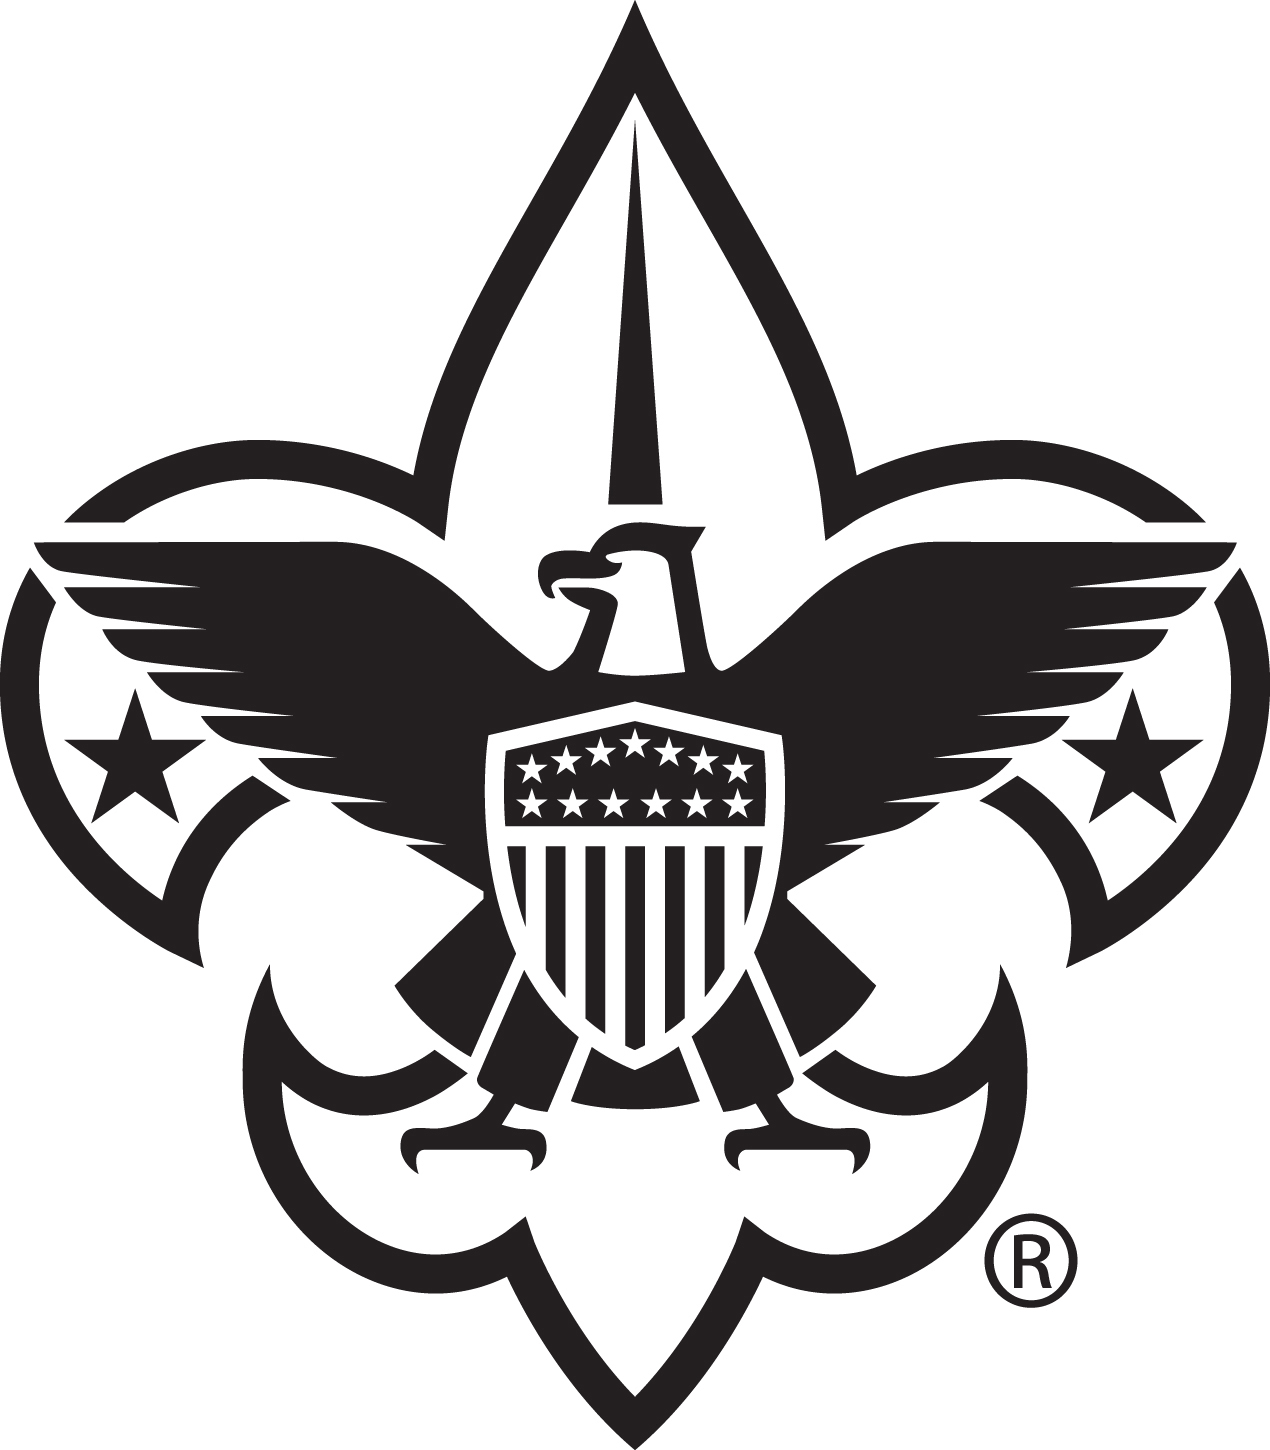 Boy scout badge clipart clipart royalty free library Free Merit Badge Cliparts, Download Free Clip Art, Free Clip Art on ... clipart royalty free library